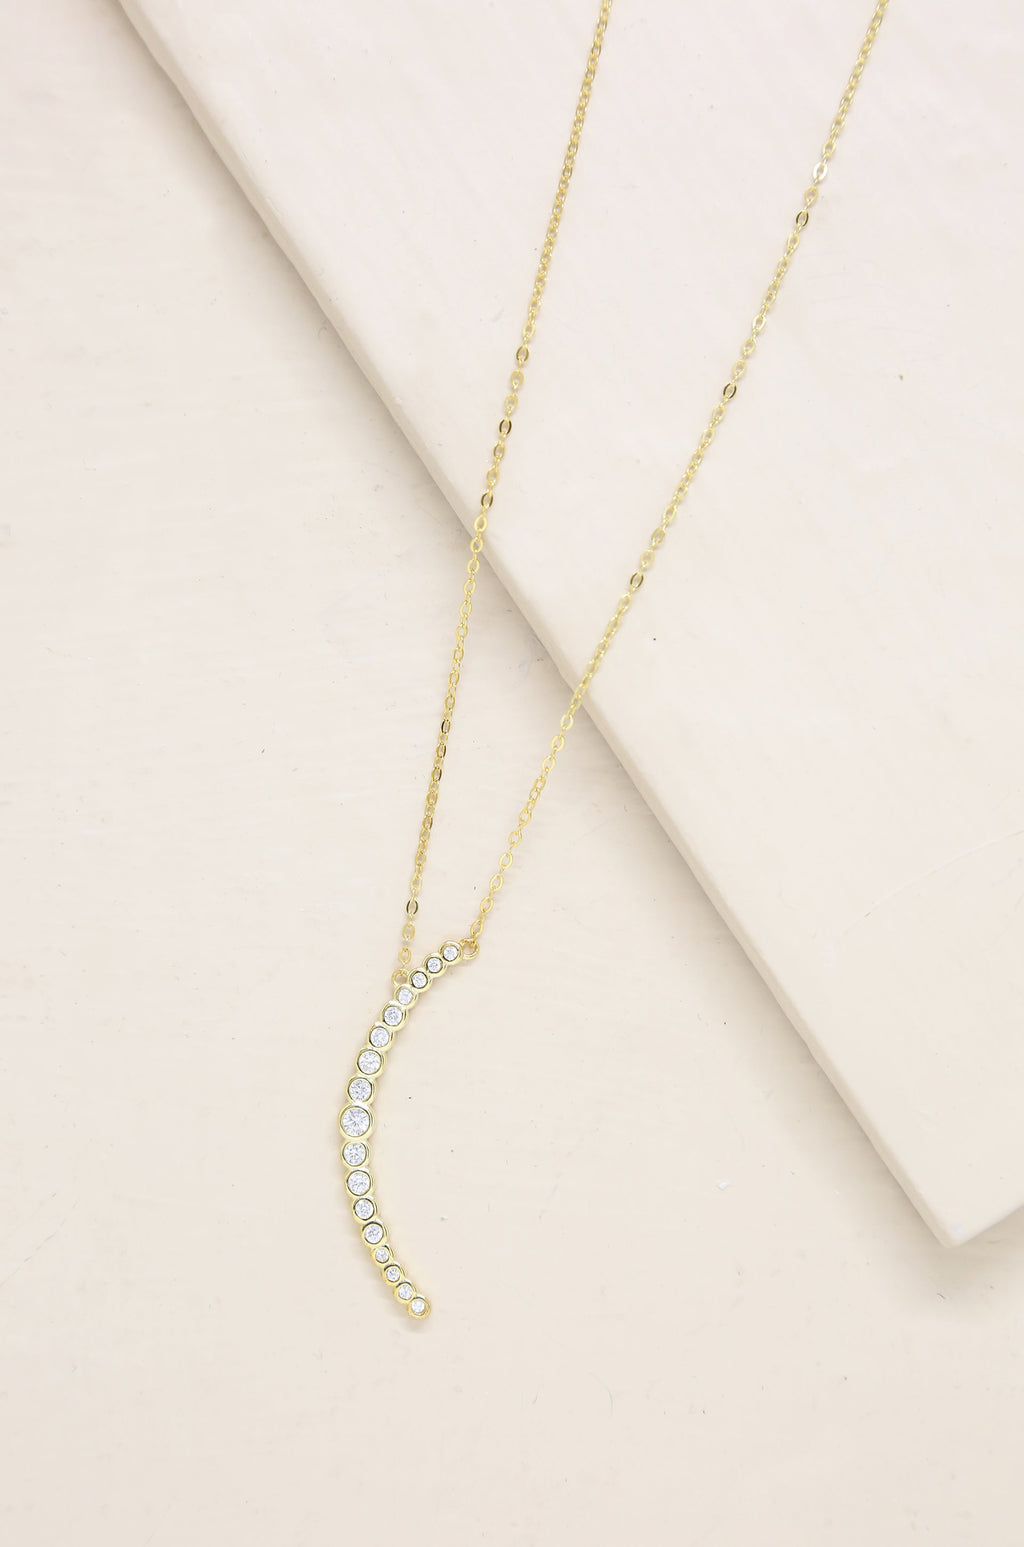 Waning Crystal 'Crescent Moon' Necklace